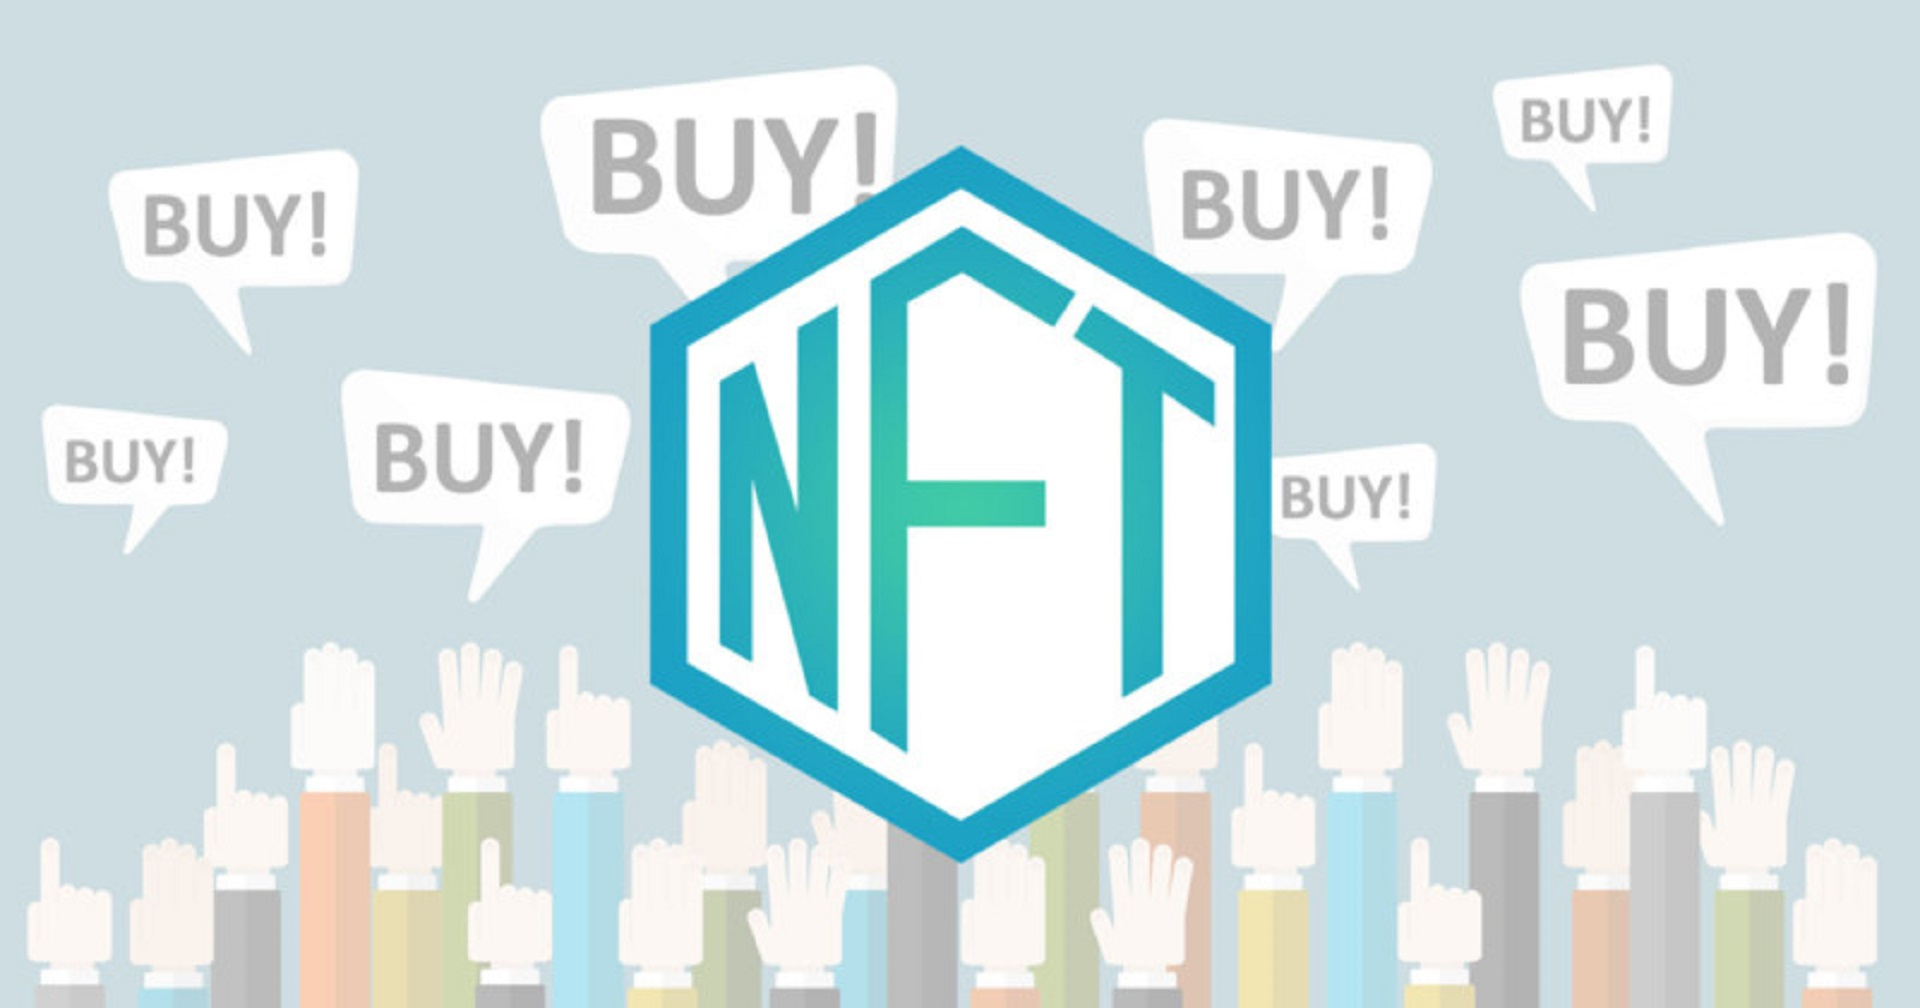 NFTs are also driving interest in cryptocurrencies. (Image courtesy of PetaPixel)